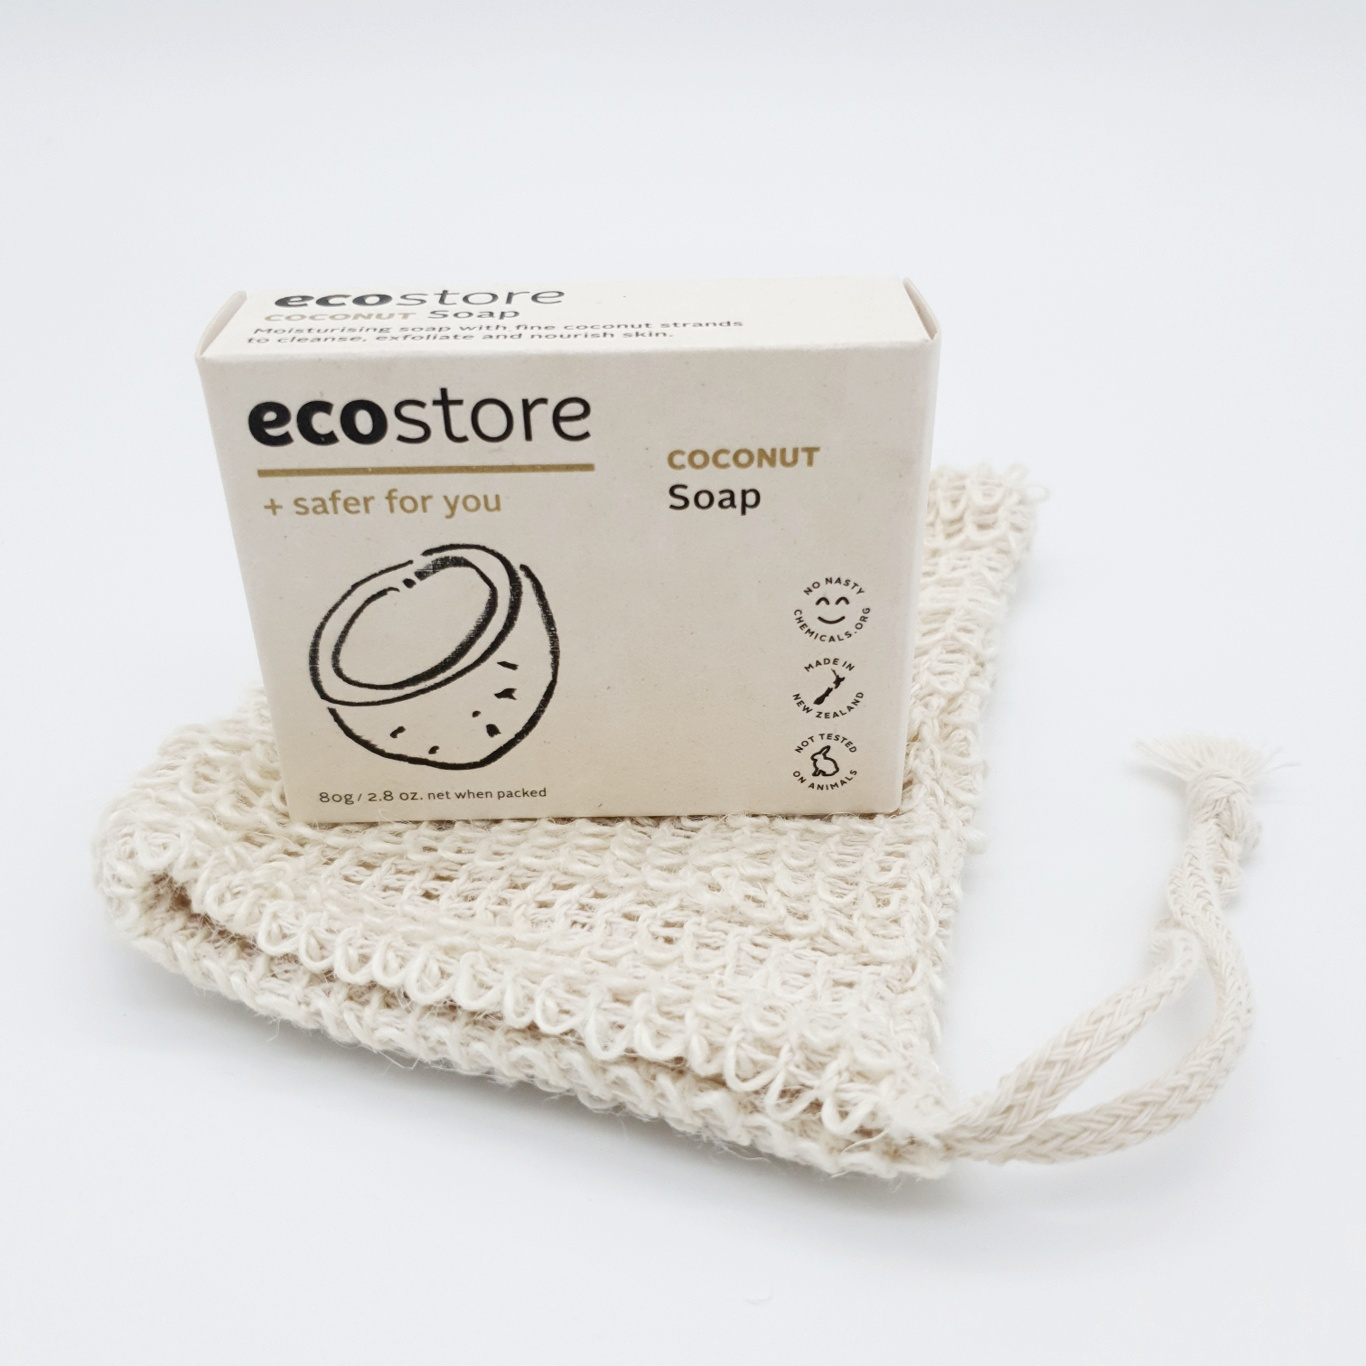 ecostore Full Series Set 4 Soaps Sisal Bag Pouch Toothpaste Handmade Bamboo Toothbrush